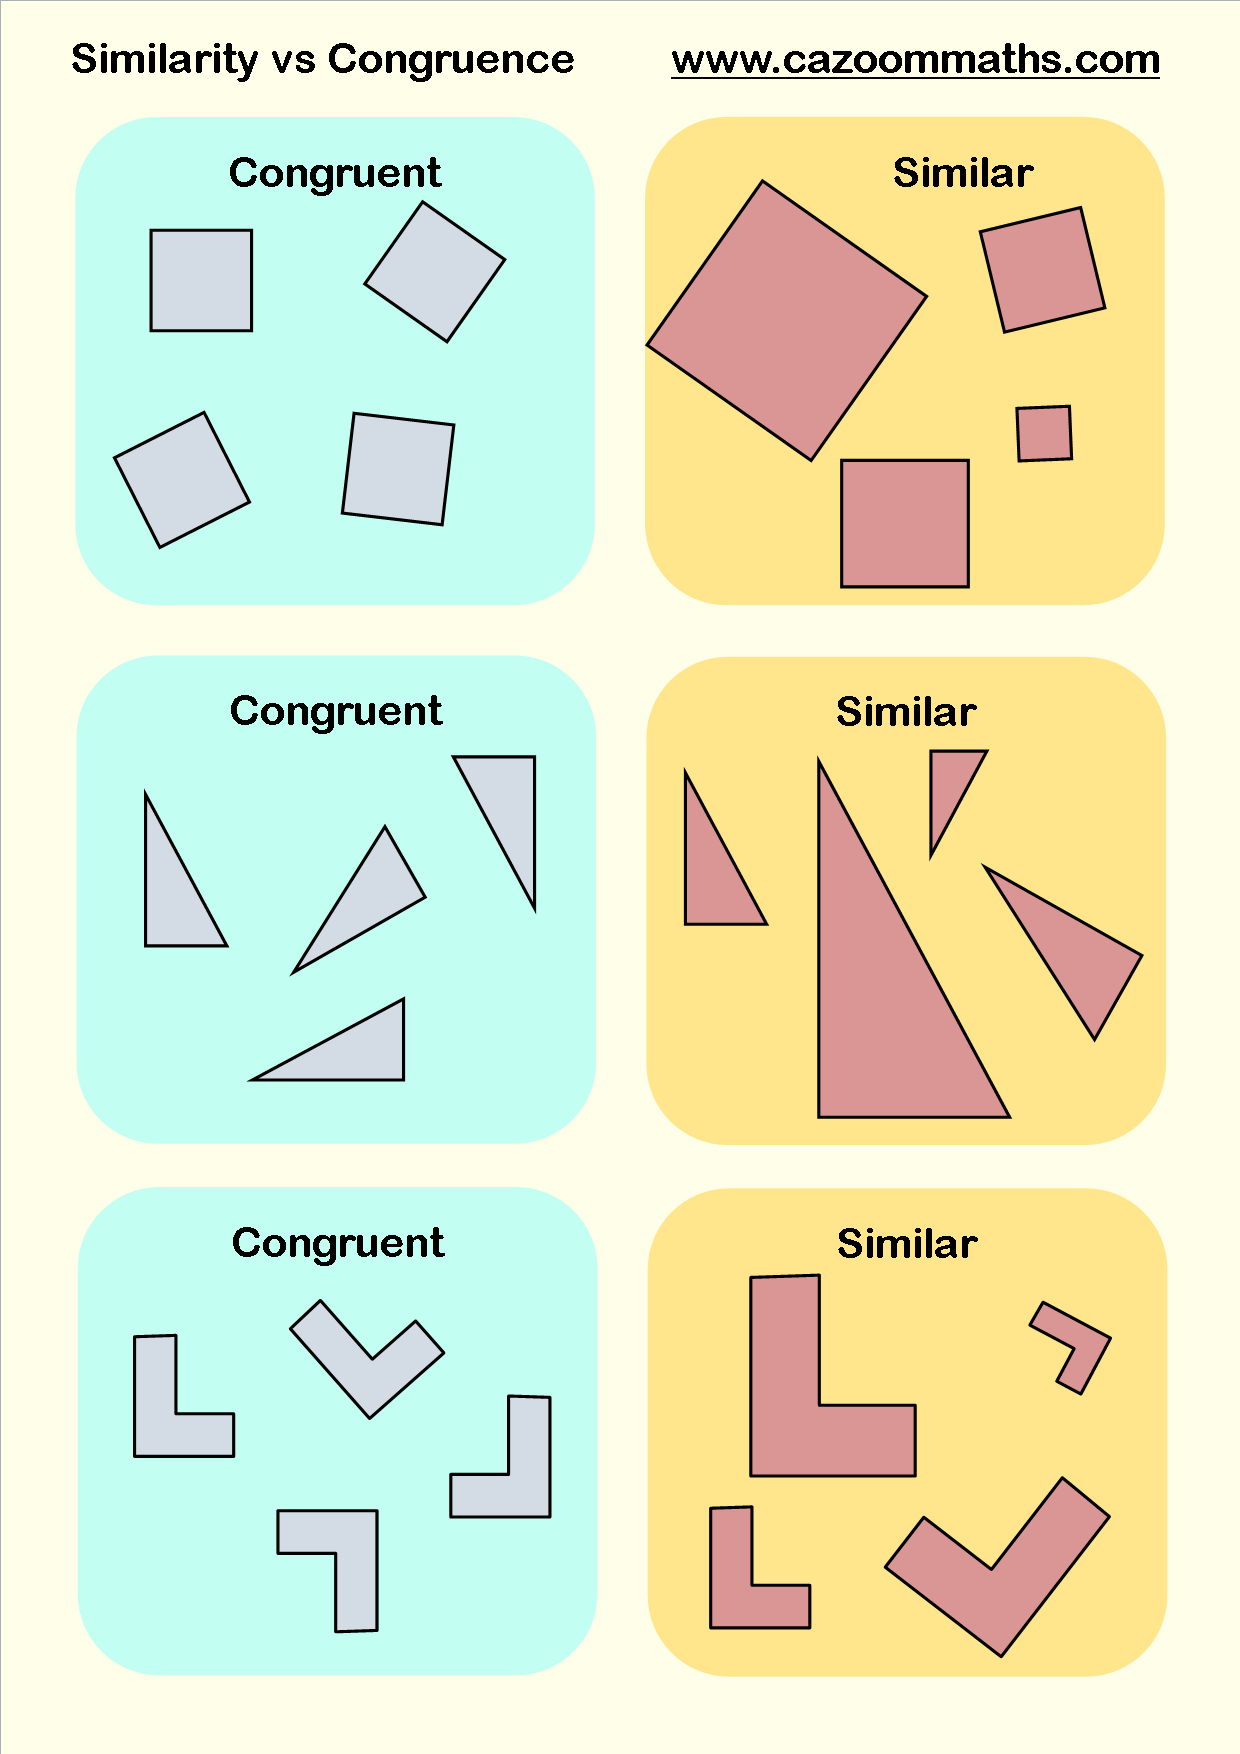 Similarity vs Congruent | 8. klass matemaatika | Pinterest | Maths ...